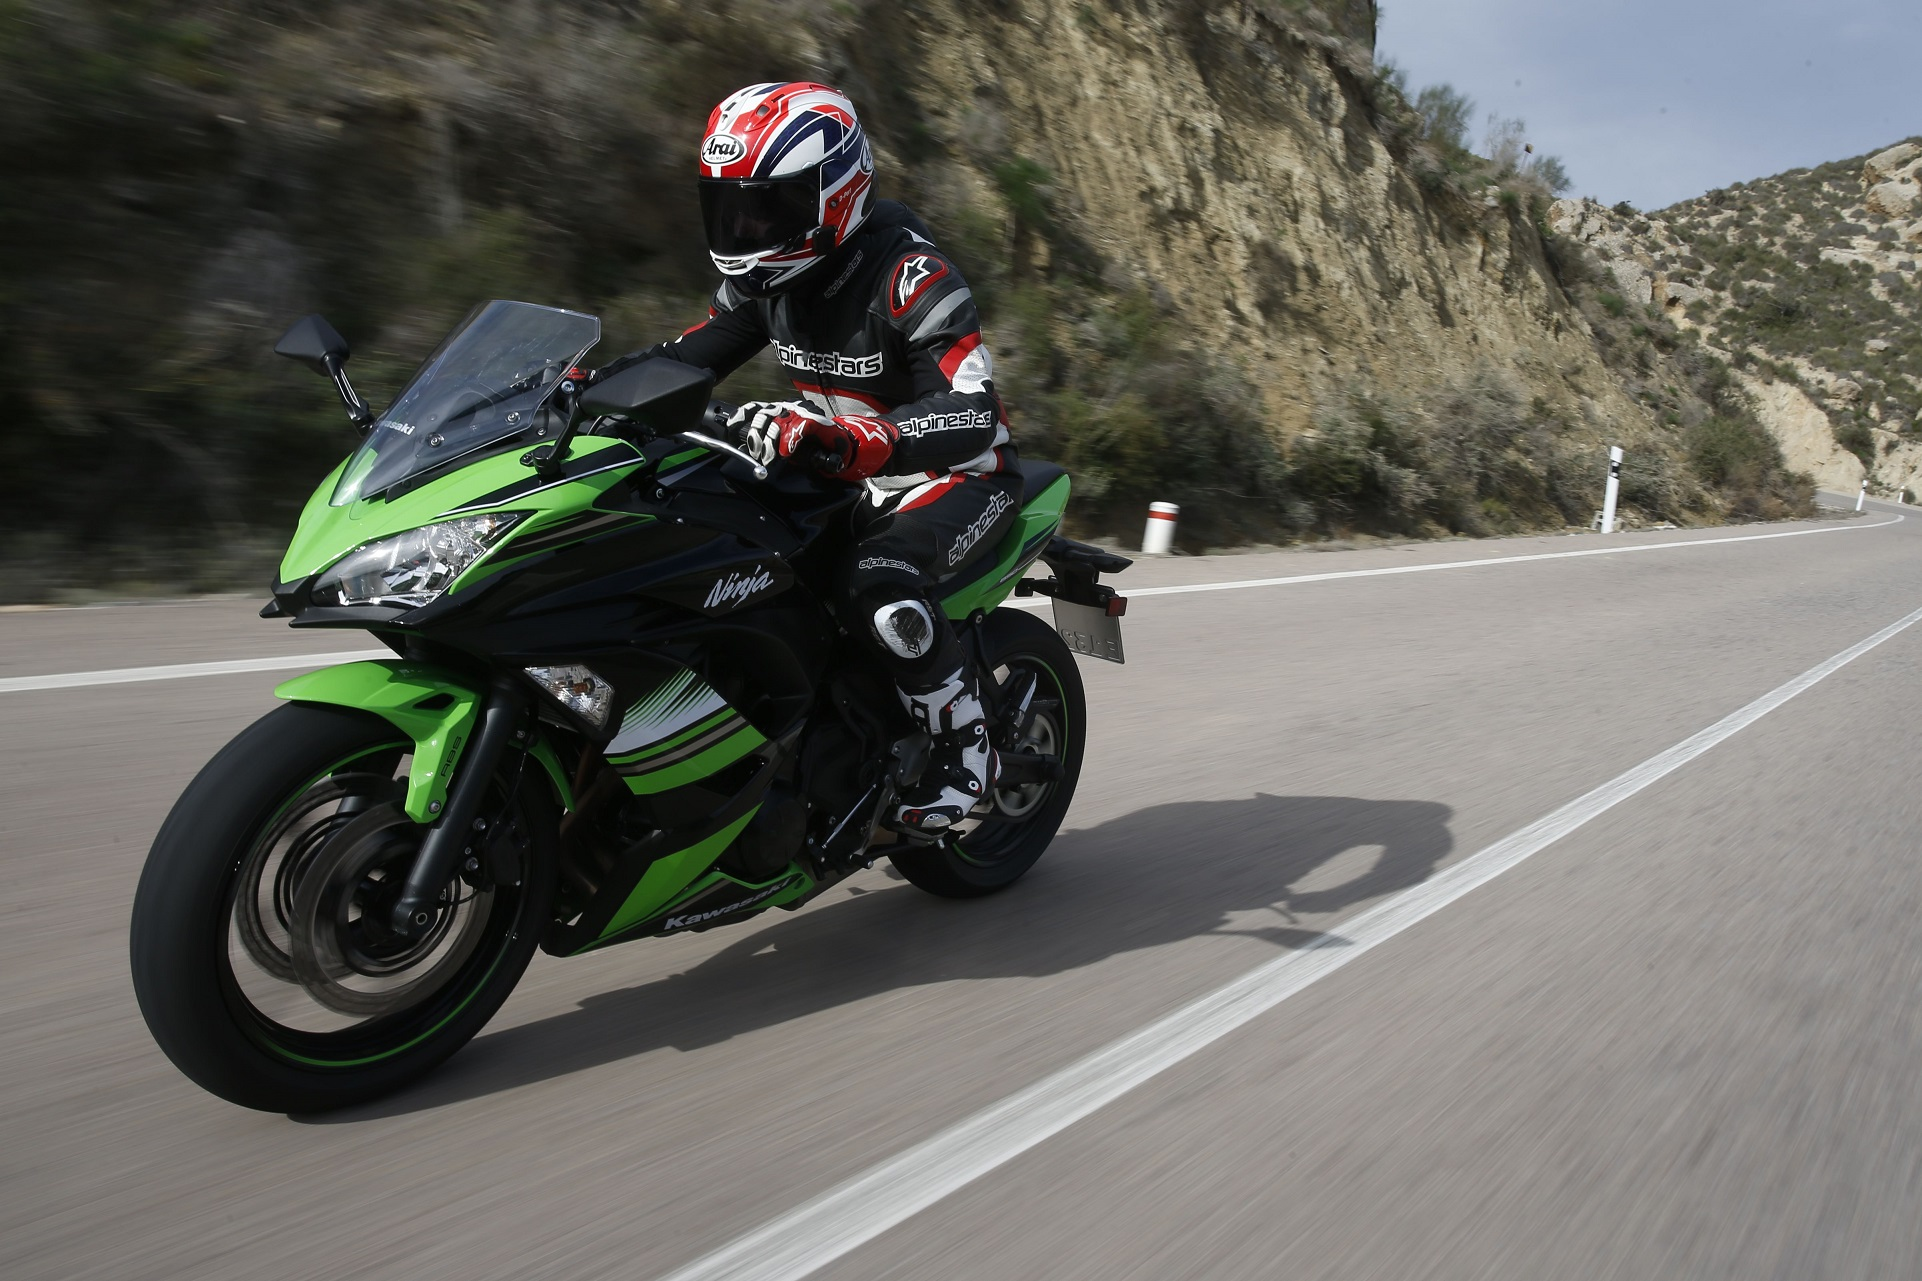 Kawasaki Ninja 650 First Ride Review With Price And Spec Visordown